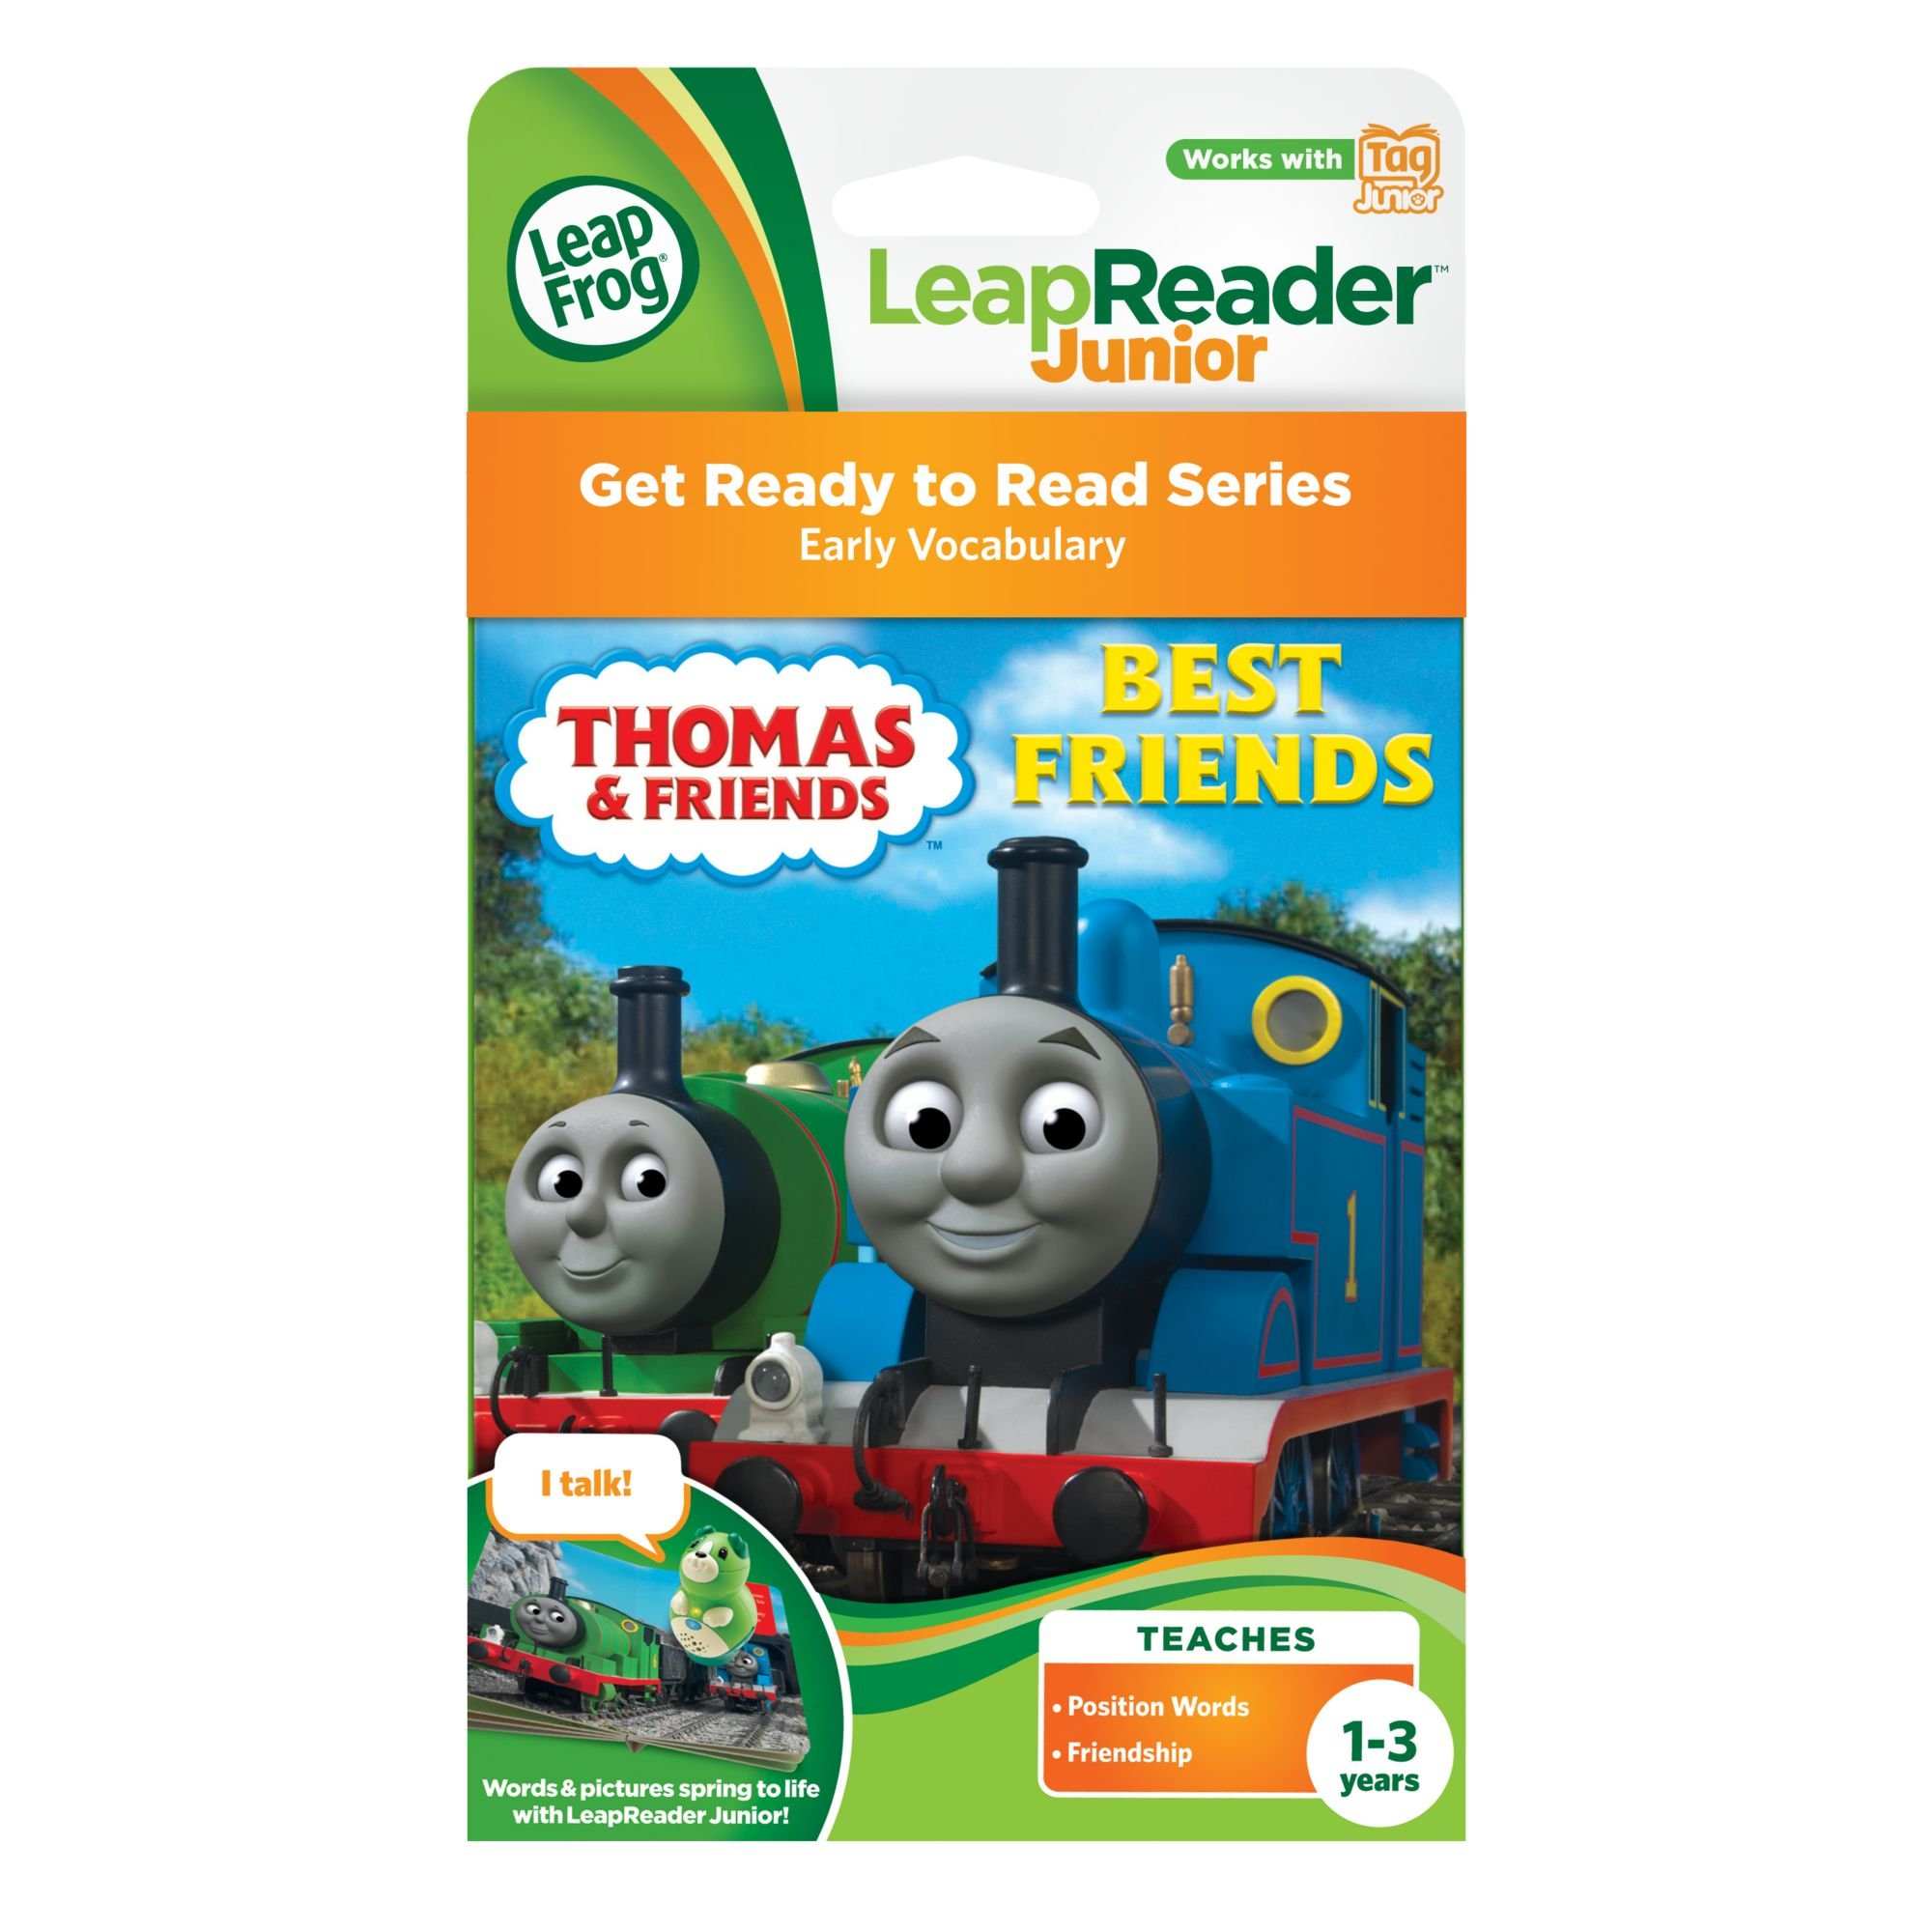 LeapFrog LeapReader Junior Book: Thomas & Friends: Best Friends (works with Tag Junior) by LeapFrog (Image #3)